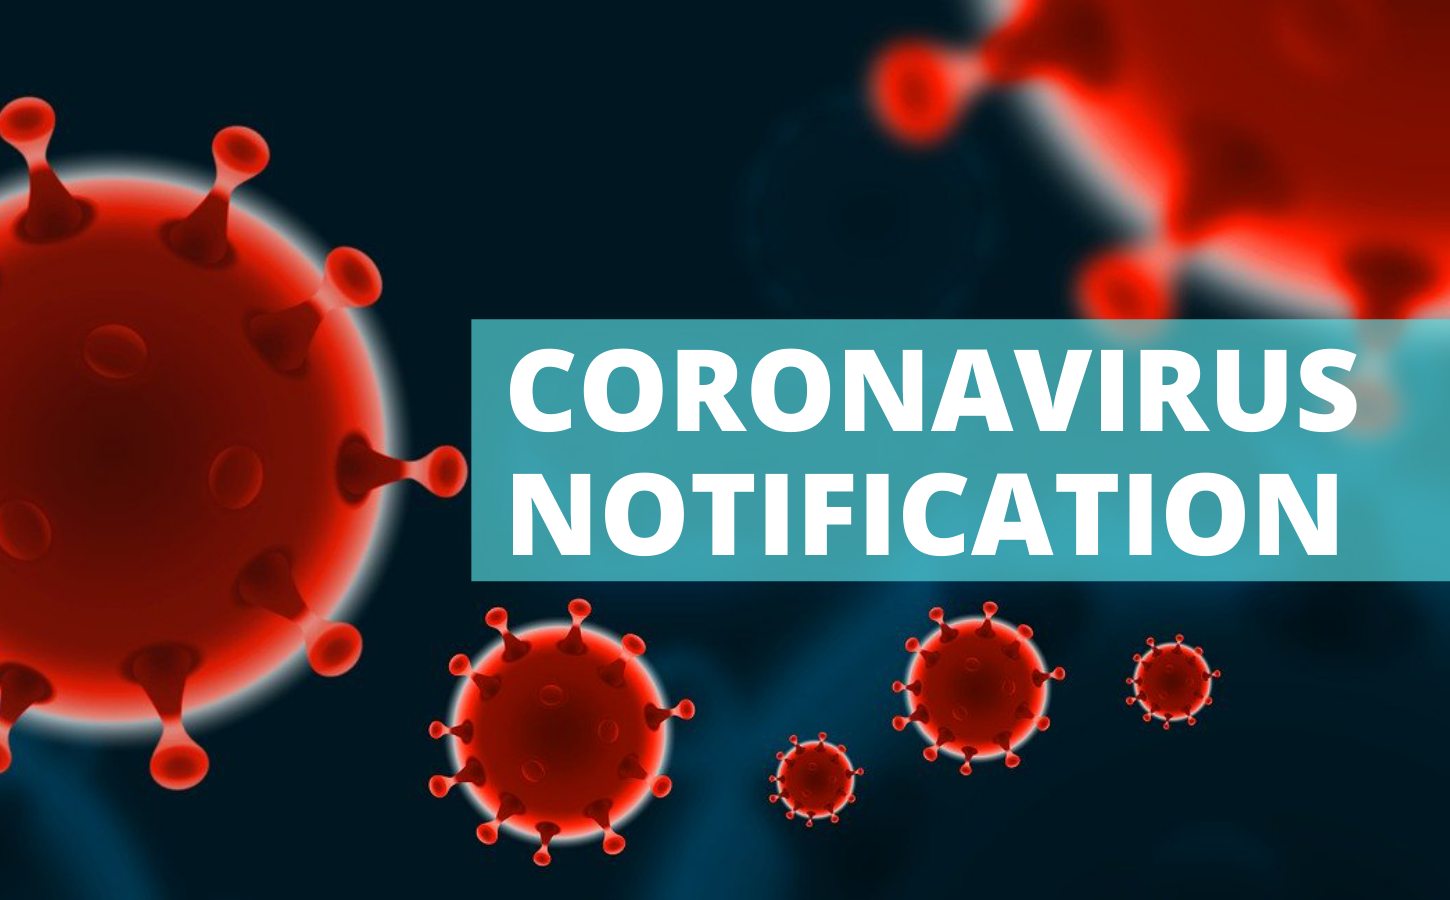 Coronavirus Notification To Our Clients